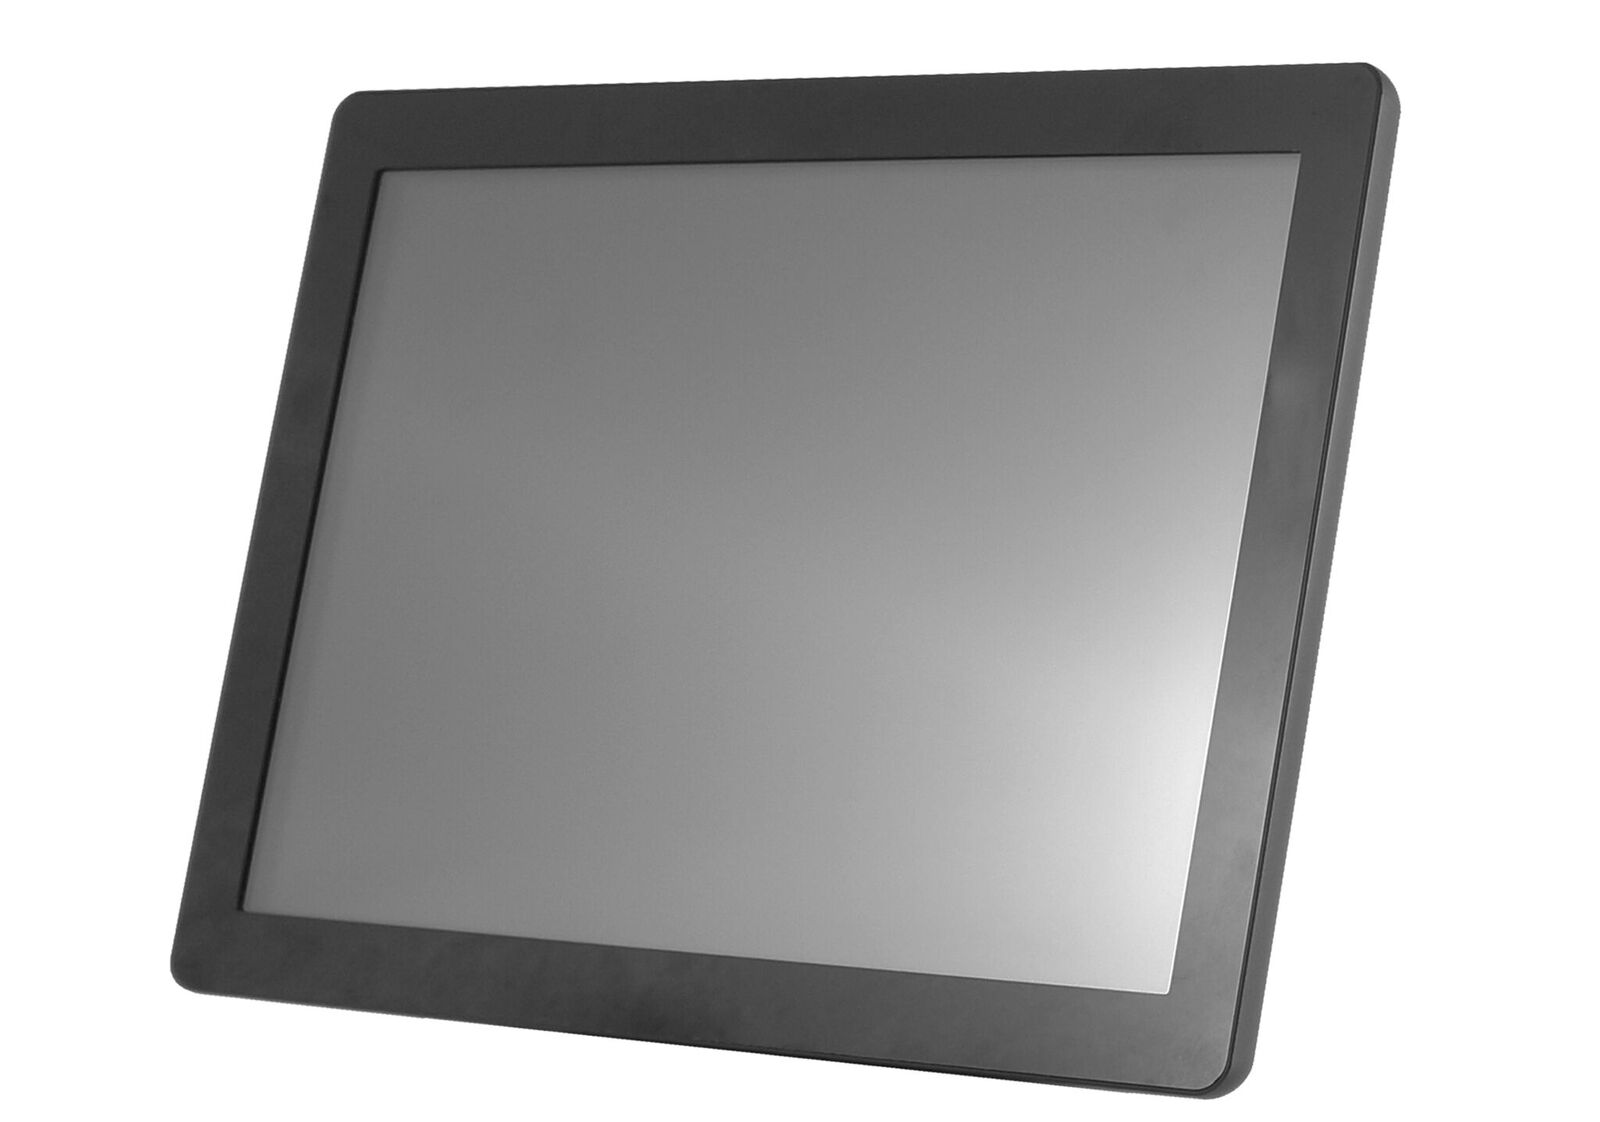 10'' Glass display - 800x600, 250nt, CAP, USB